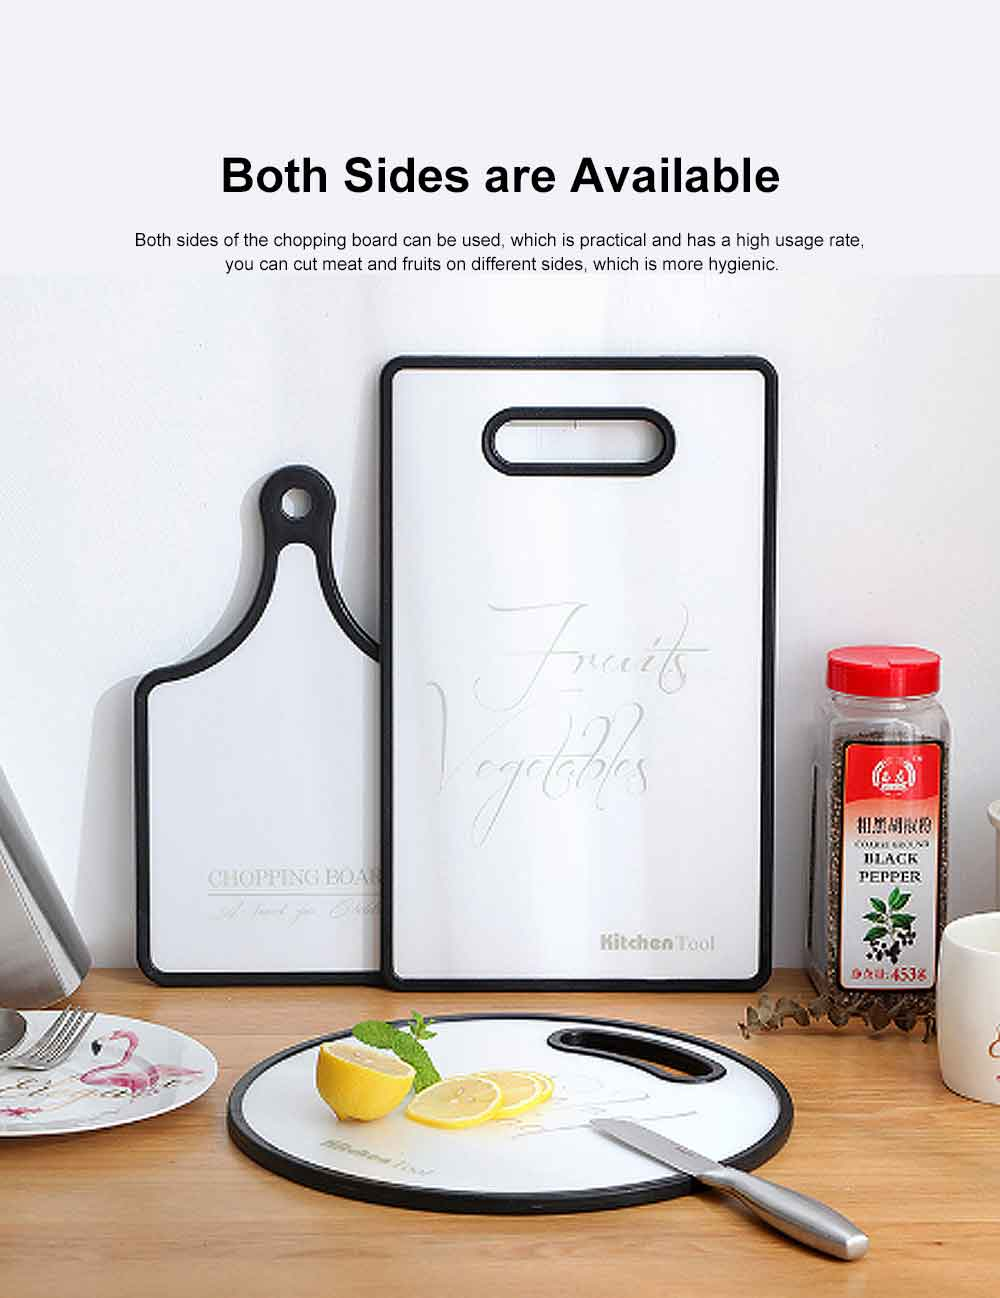 Vegetable Fruit Cutting Board, Baking Bread Board, Kitchen Environmental Protection Chopping Board 2